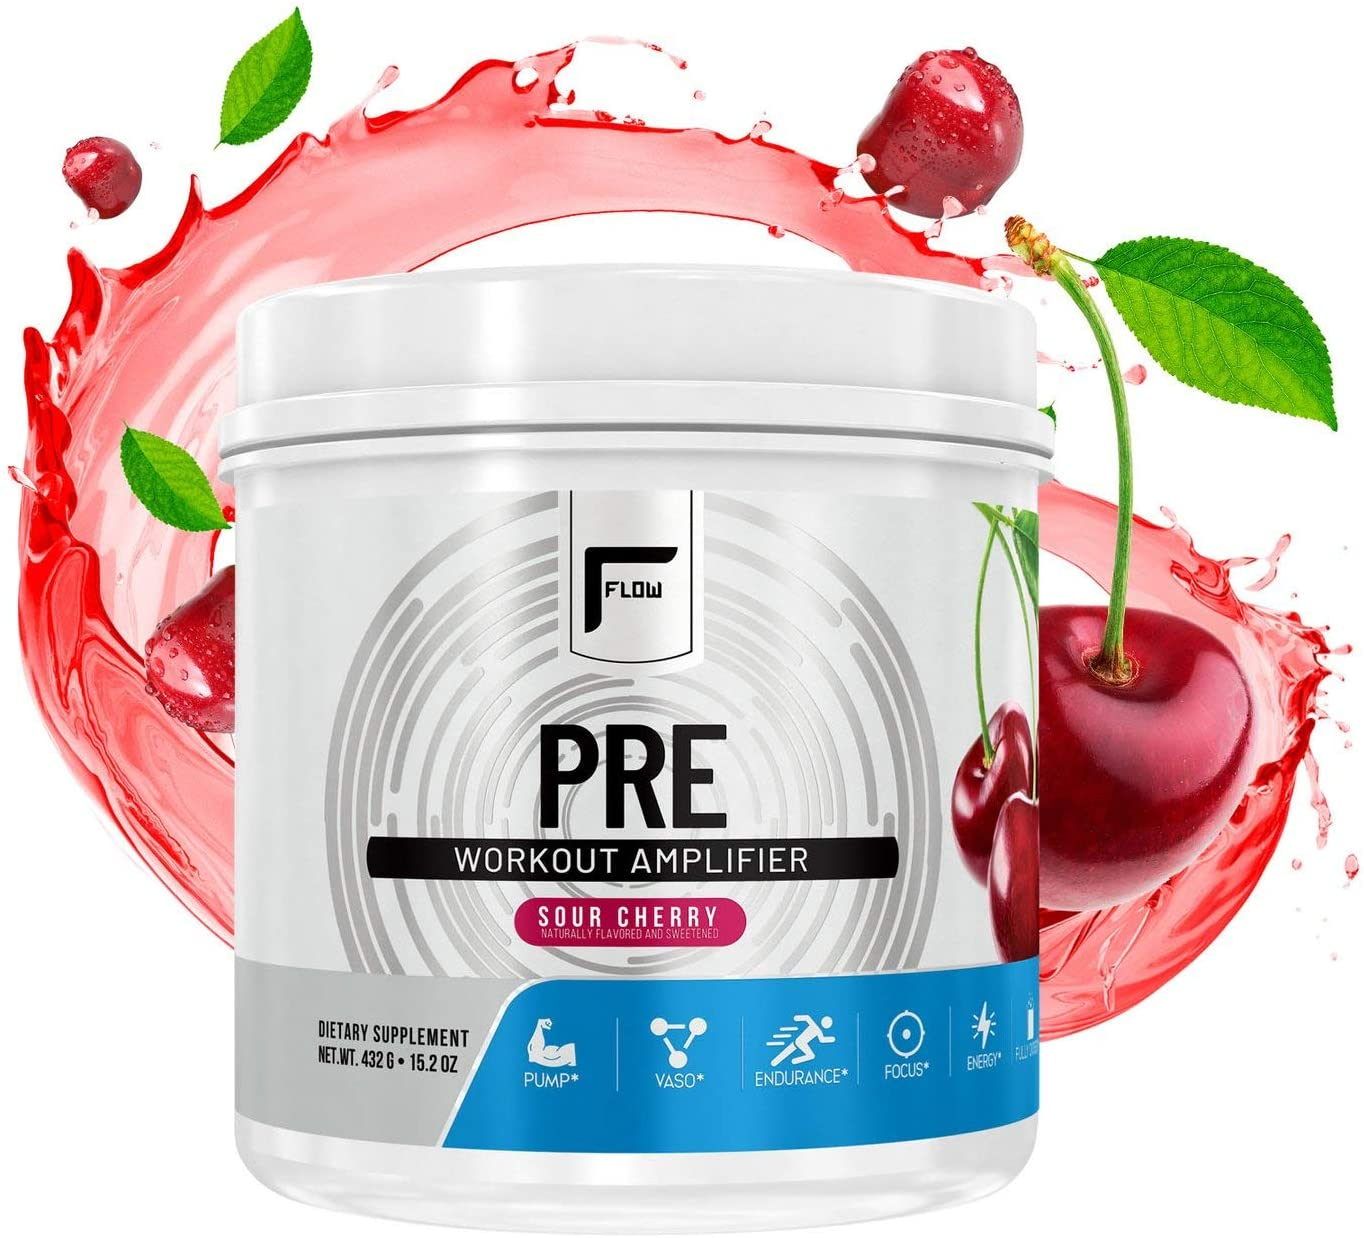 Flow Supplements, Natural Pre-Workout Powder, Naturally Flavored and Sweetened, Workout Amplifier, Pump, Vaso, Endurance, Focus, Energy, Fully Dosed, Sour Cherry, 30 Servings